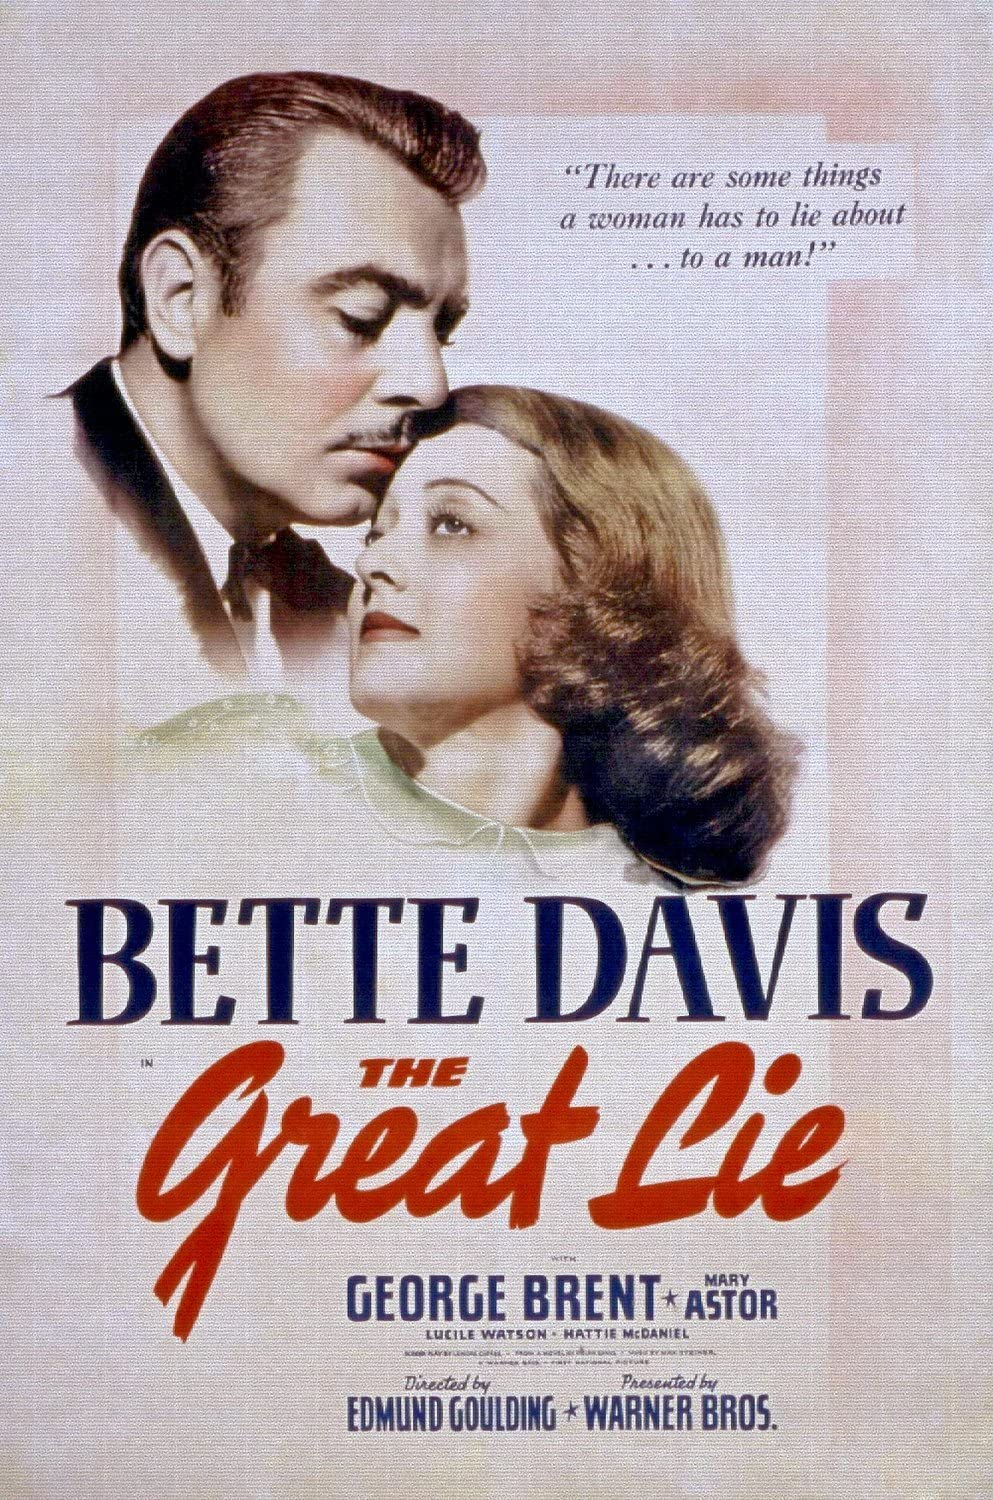 "ODSAN La grande menzogna, Bette Davis, George Brent, e Mary Astor, 1941 –  Senza Cornice, 16"" by 24"": Amazon.it: Casa e cucina"